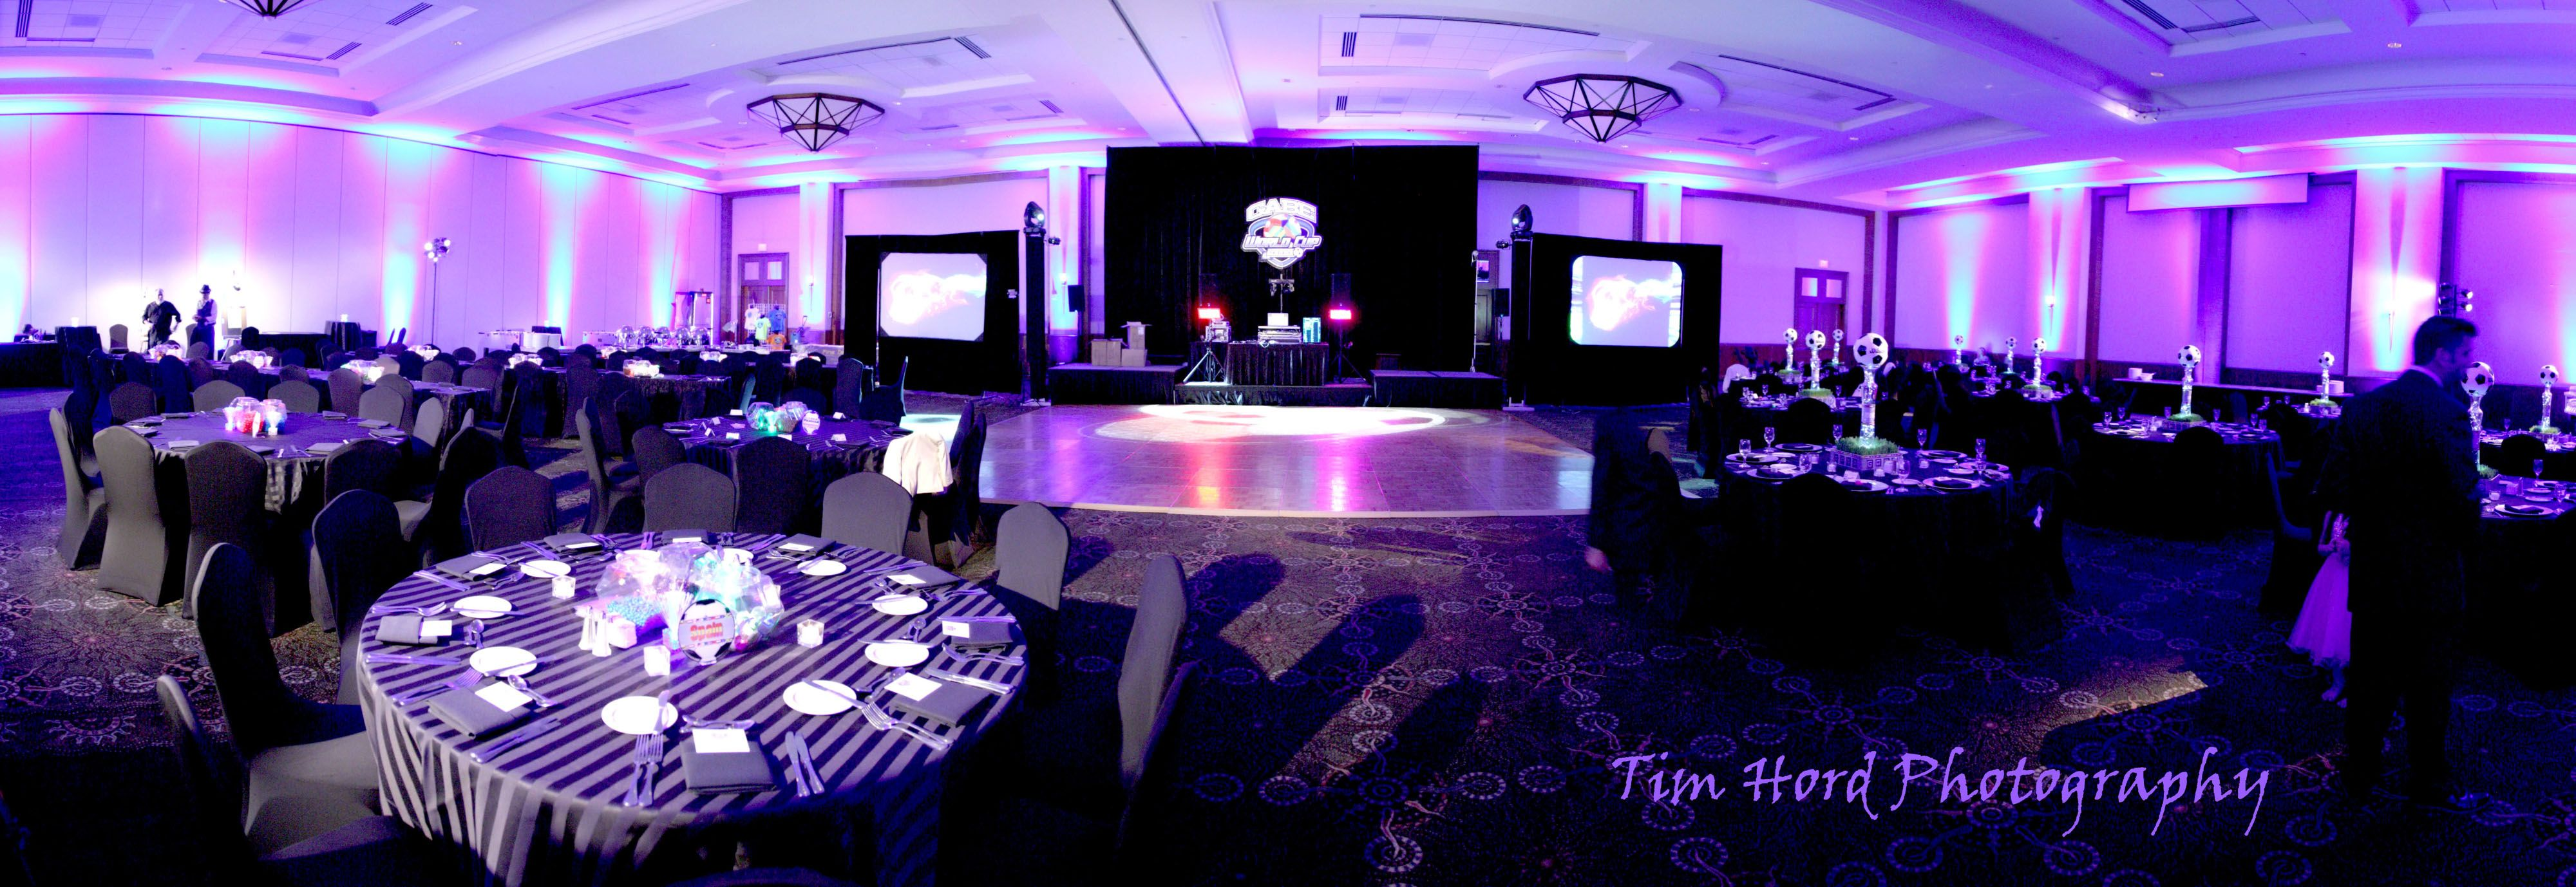 Uplighting And Audio Visual By BEYOND Adds The Perfect Elements To This Party At Marriott Legacy